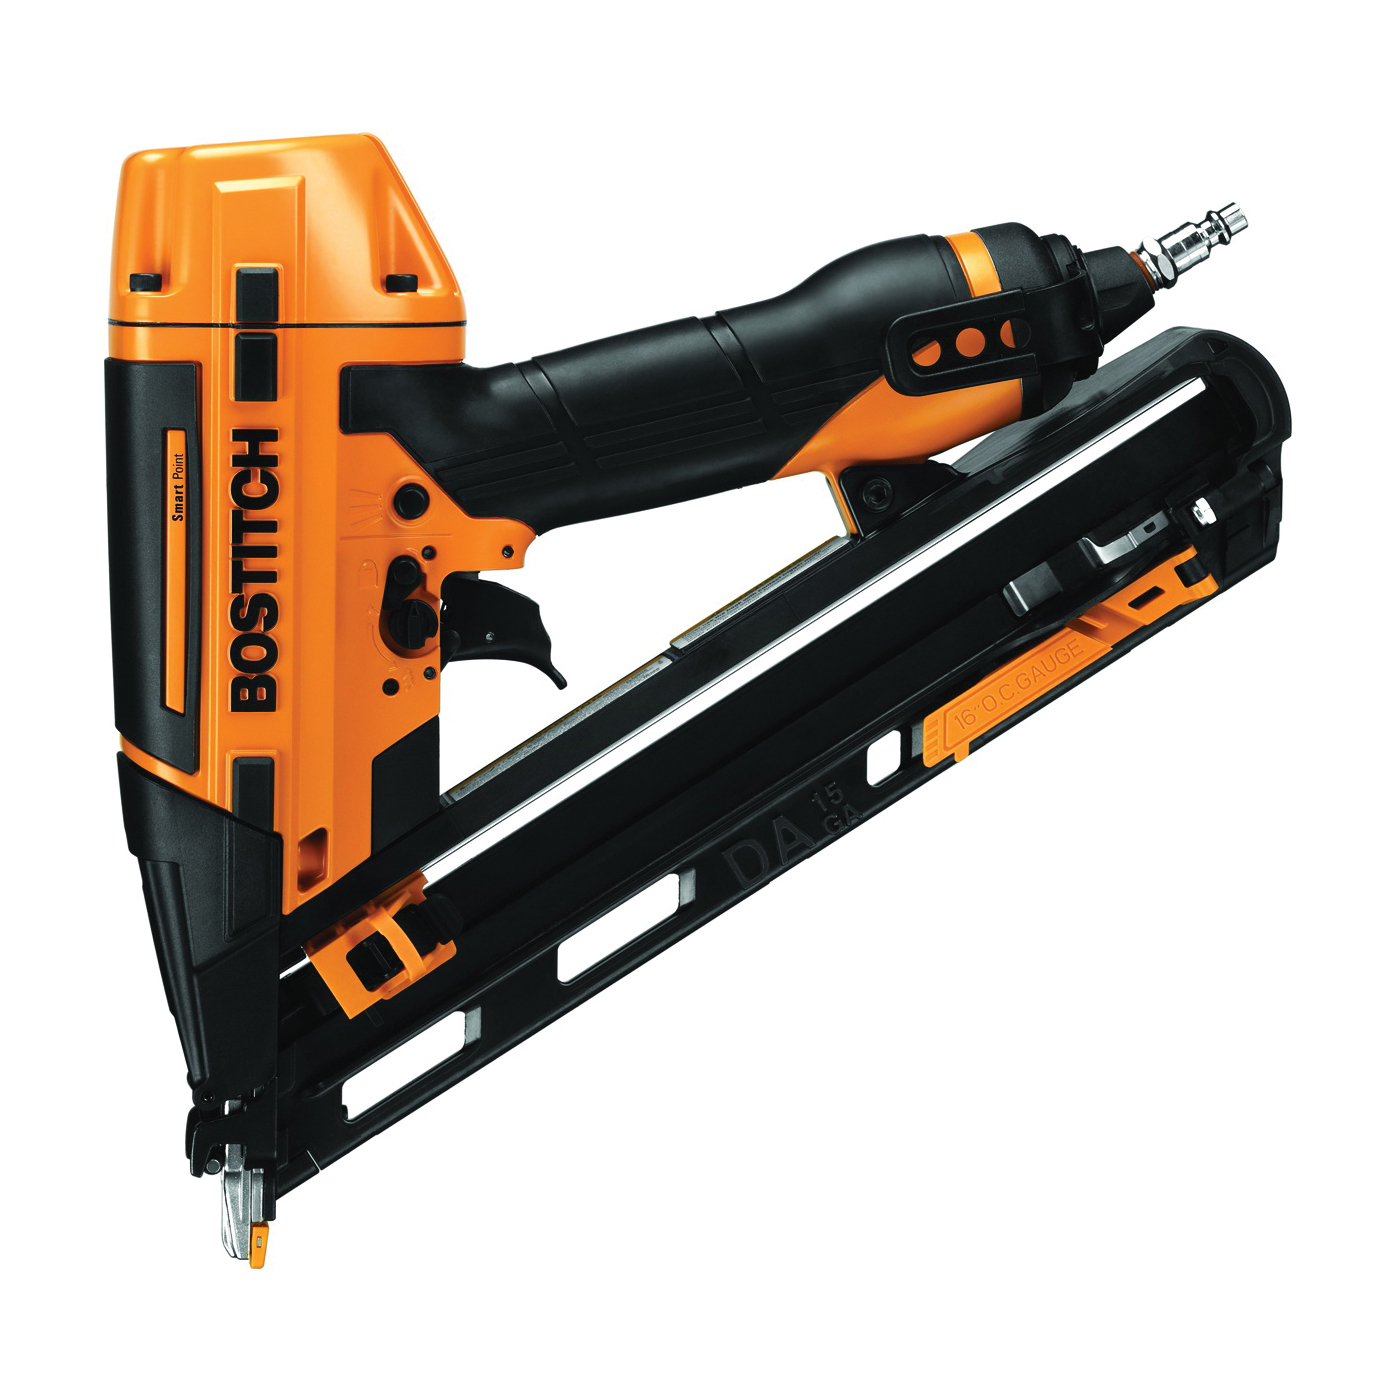 Picture of Bostitch BTFP72155 Finish Nailer Kit, 100 Magazine, Glue Collation, 2-1/2 in Fastener